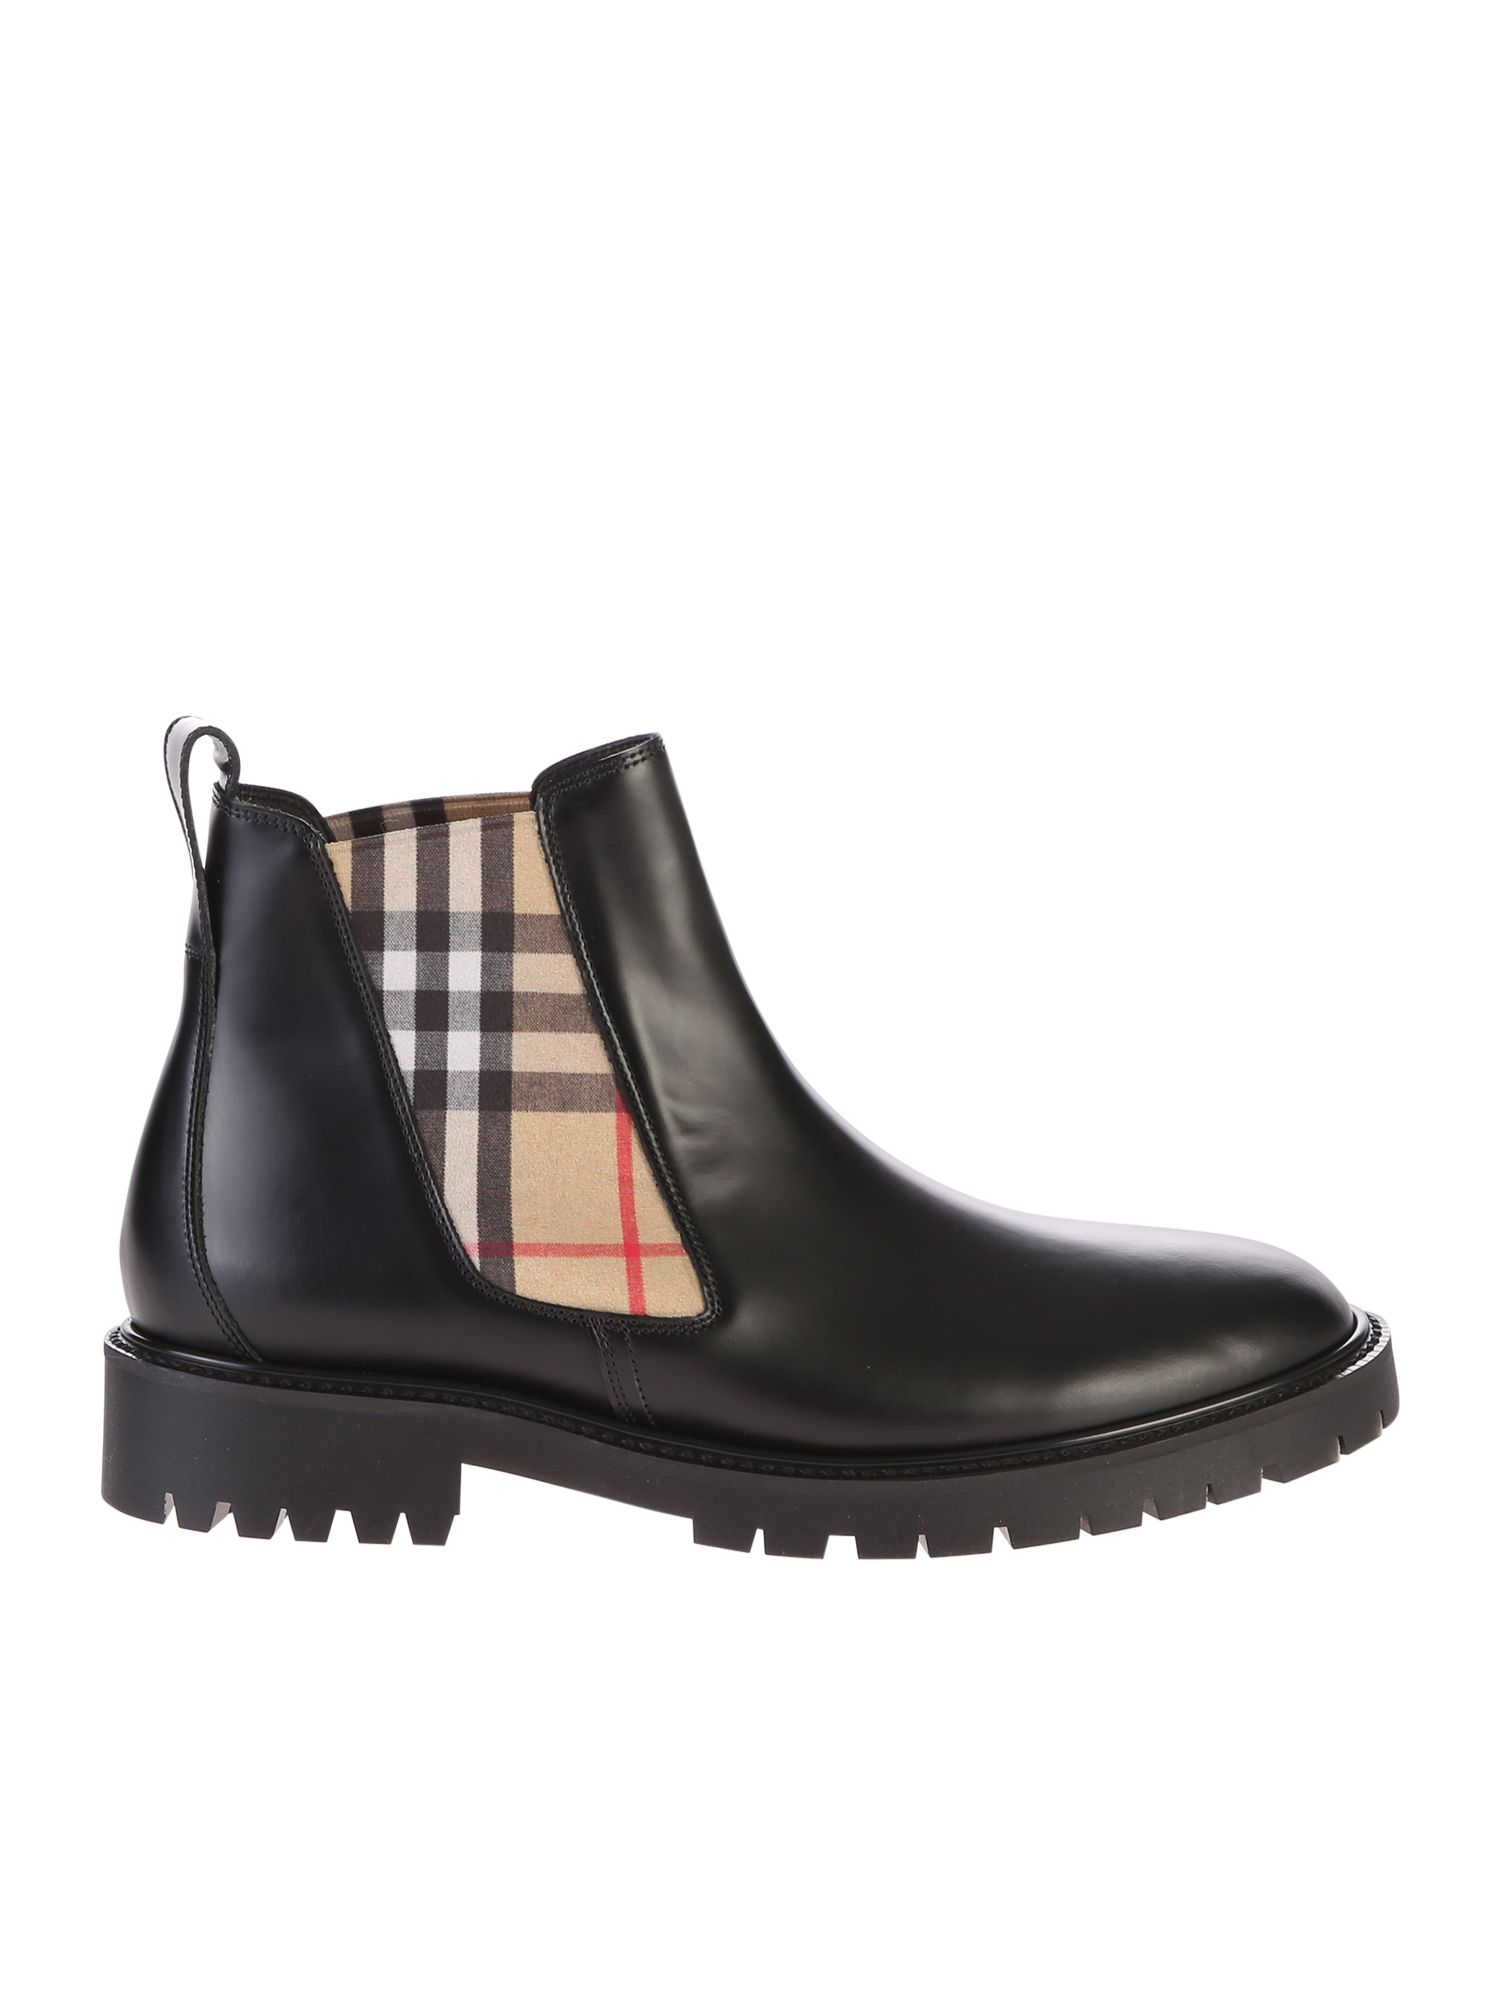 BURBERRY | Burberry Black Checked Ankle Boots | Clouty